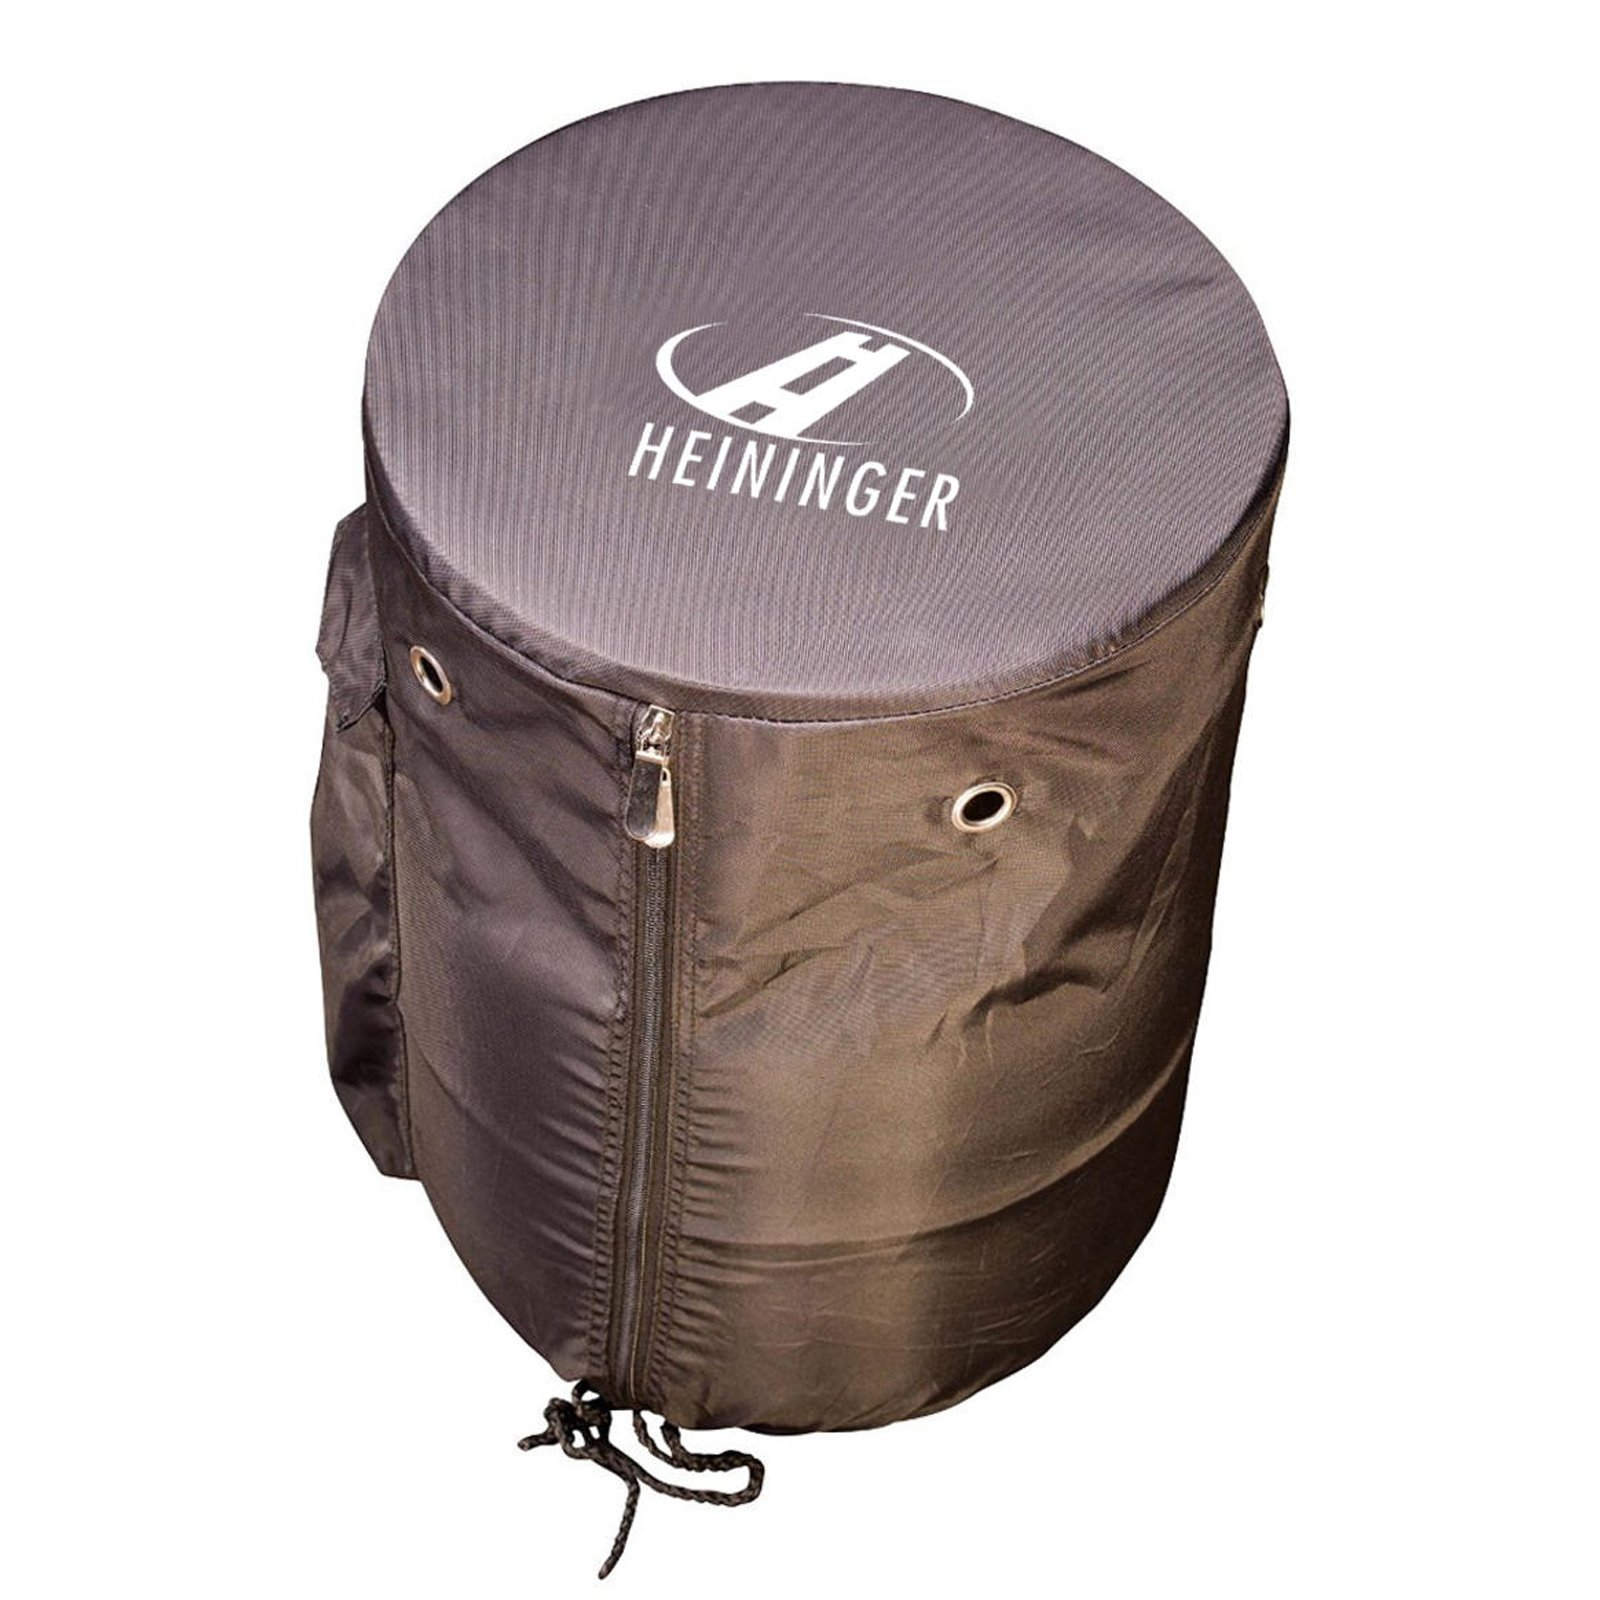 Destination Gear Propane Tank Cover by Heininger